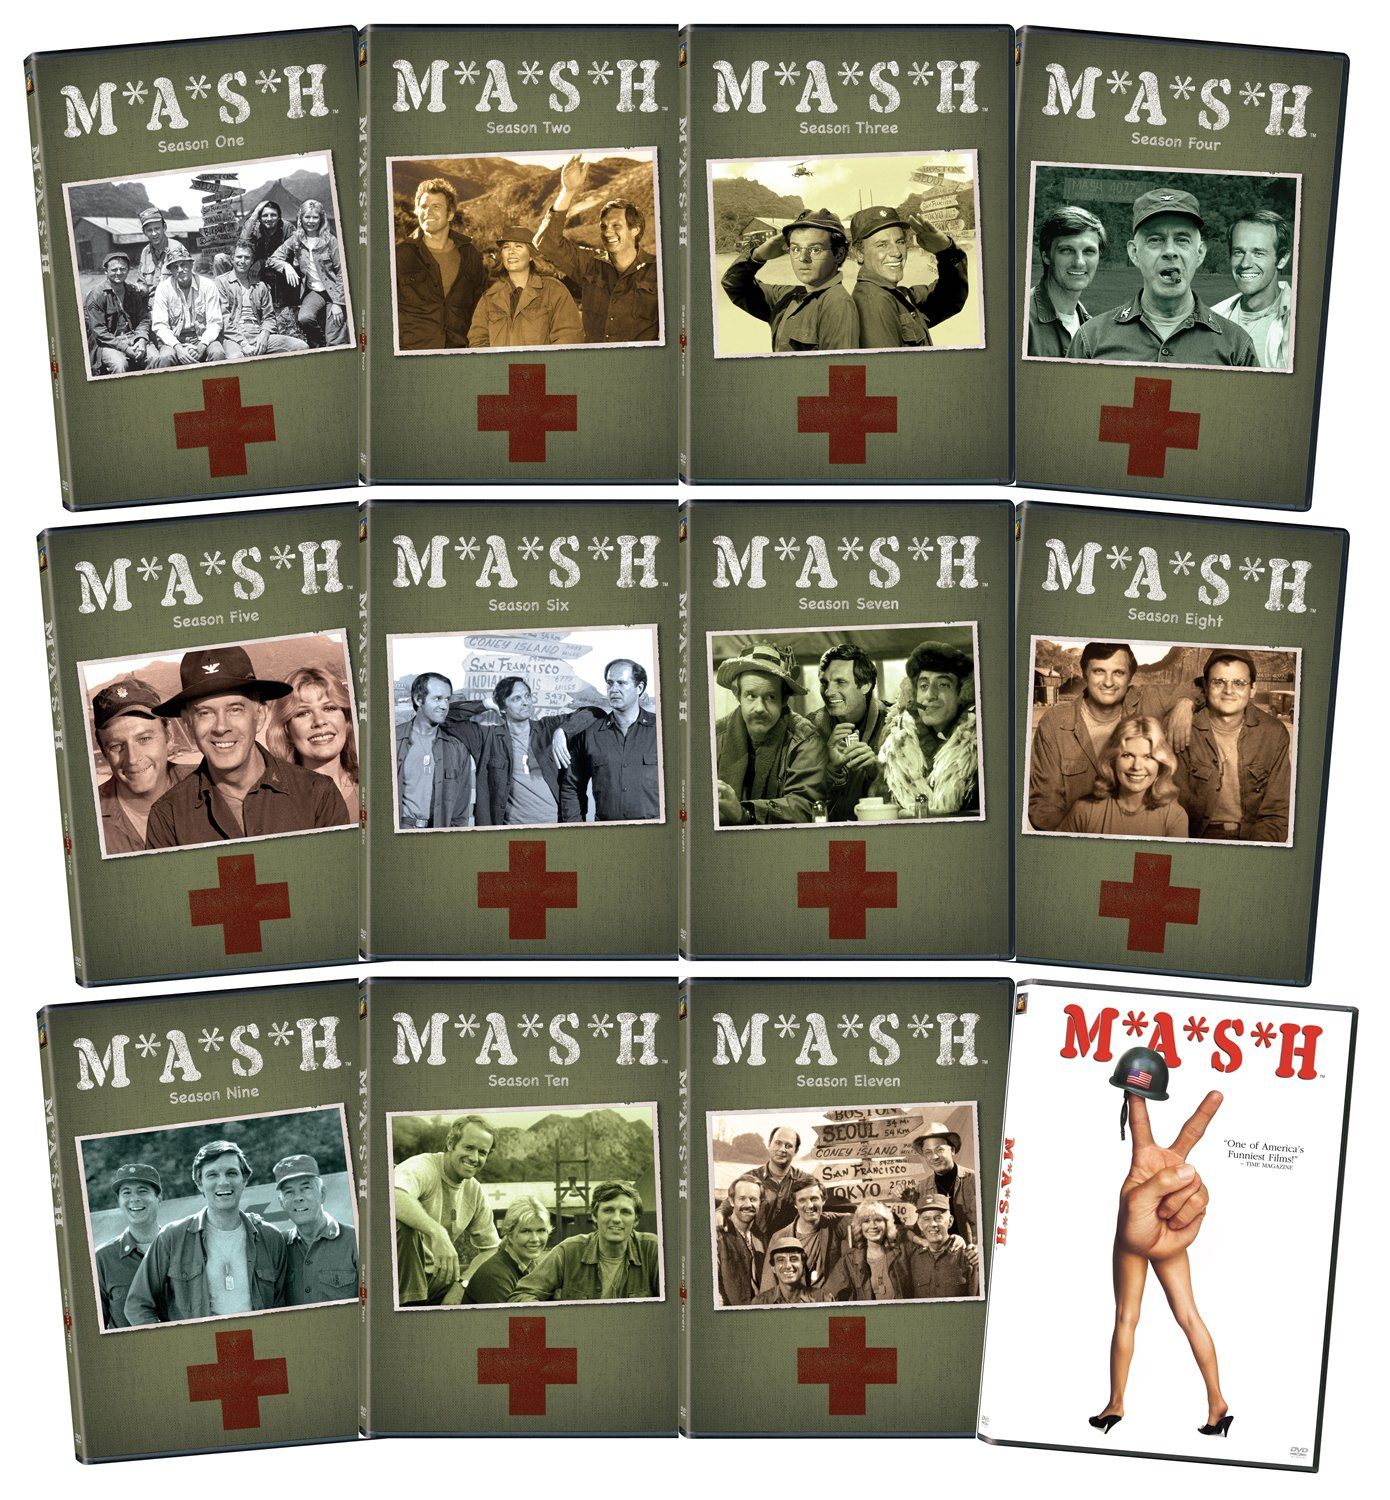 M*A*S*H: The Complete Series + Movie $79.99